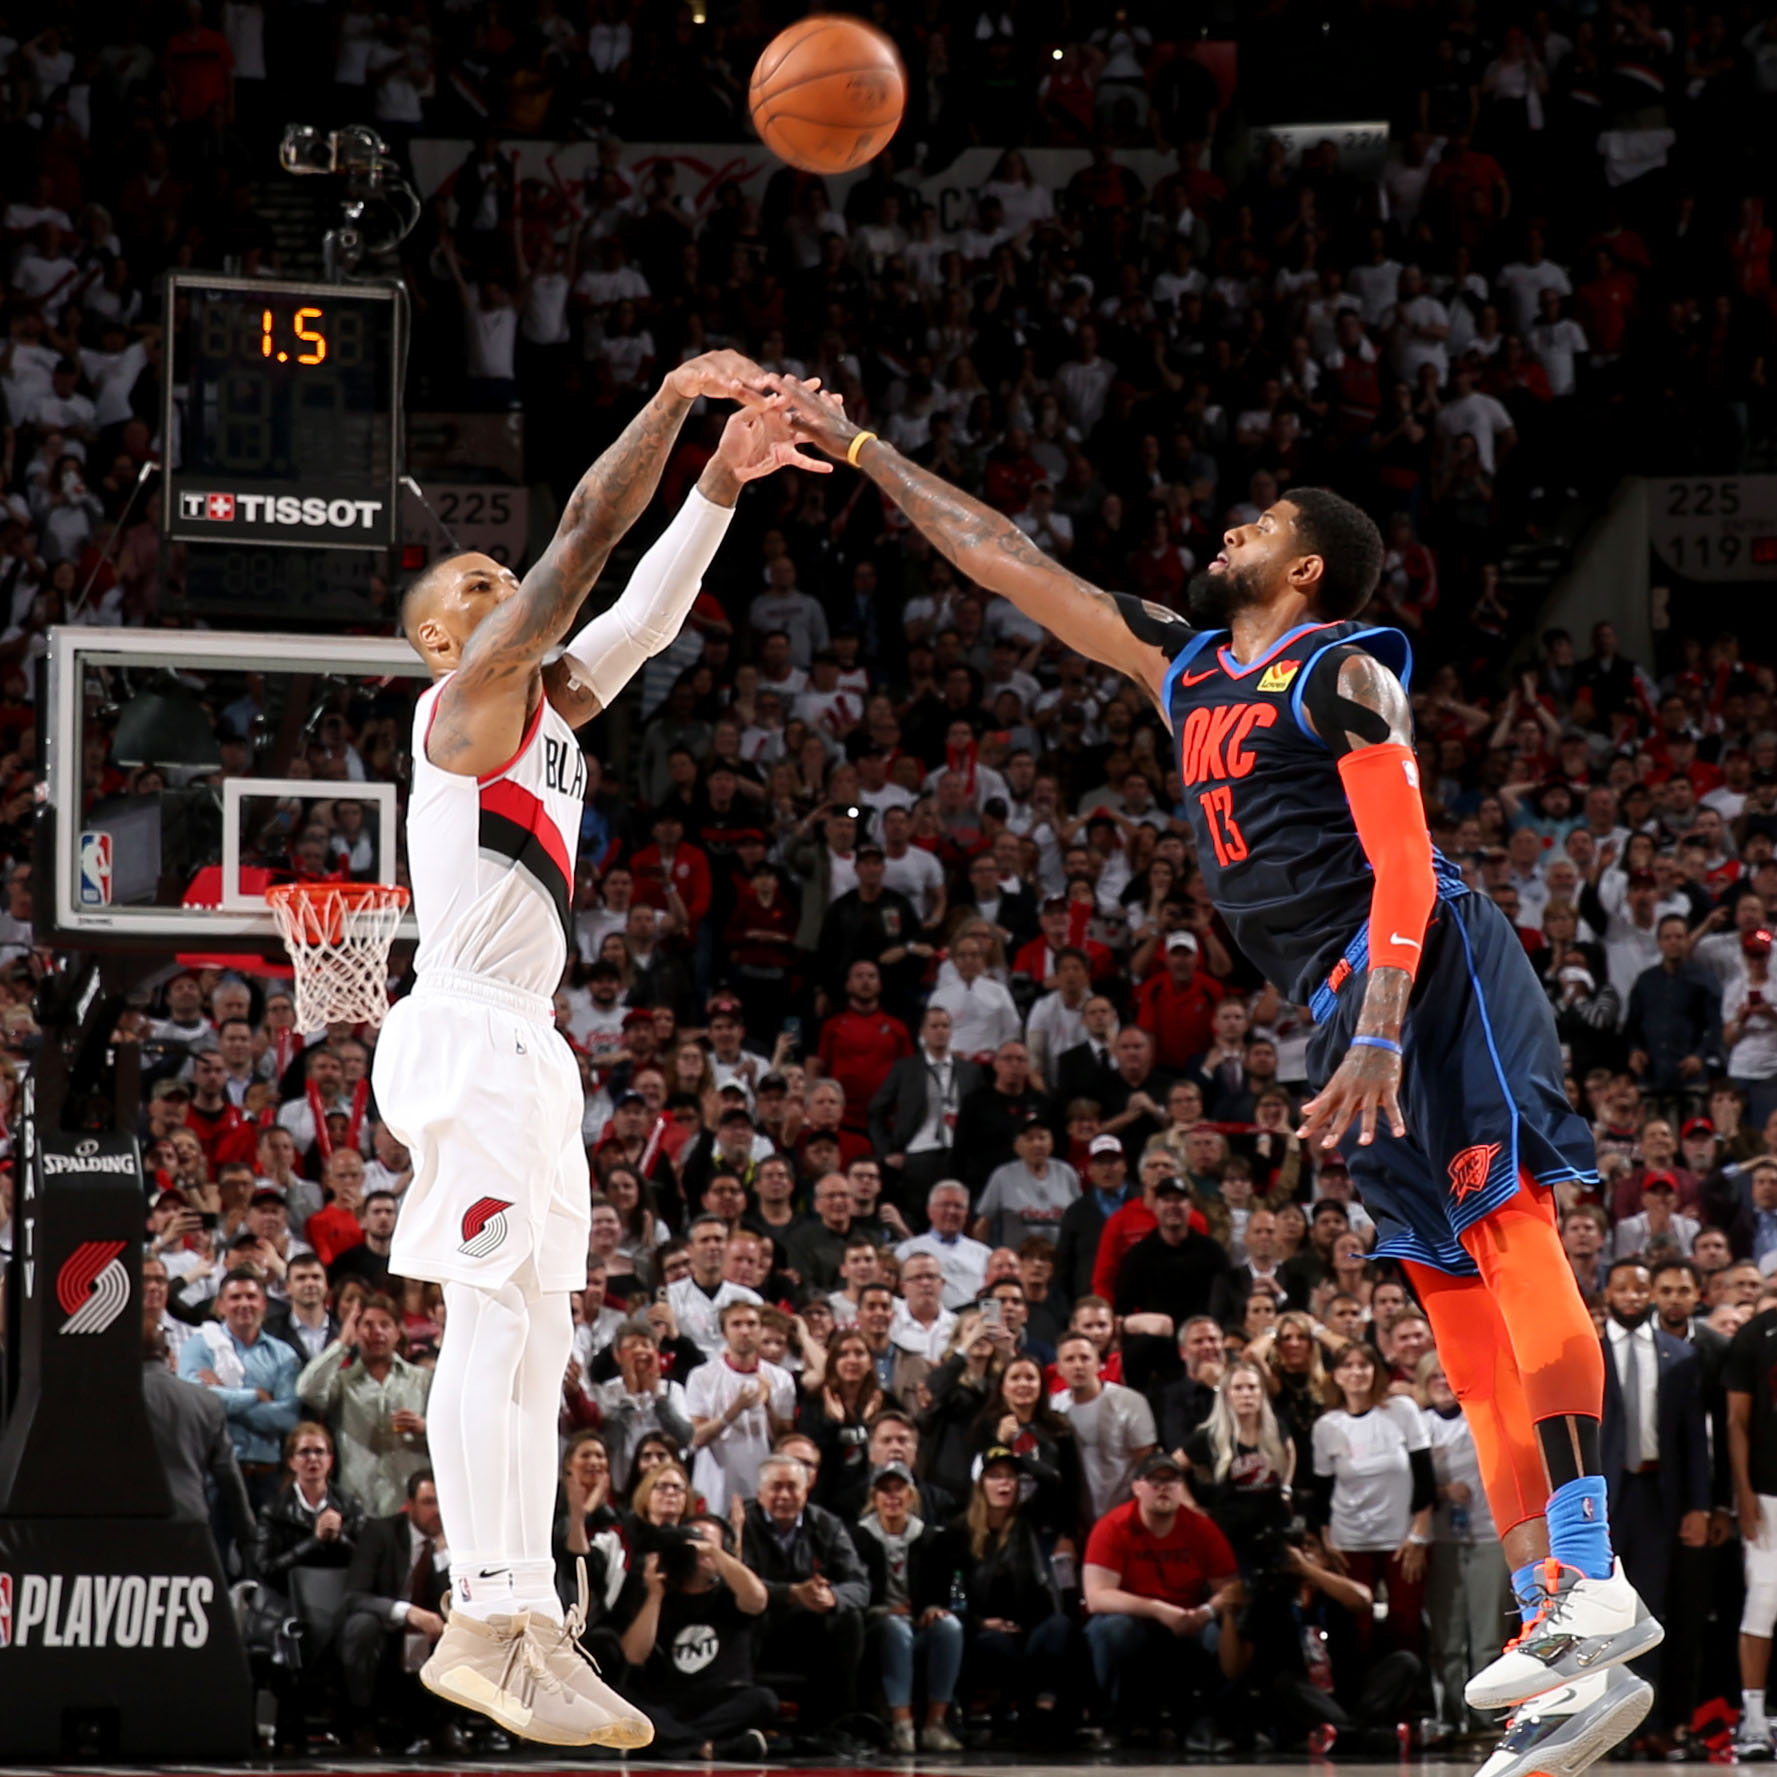 Blazers Thunder Reddit: Damian Lillard Buzzer Beater: Breakdown Of Game-winner